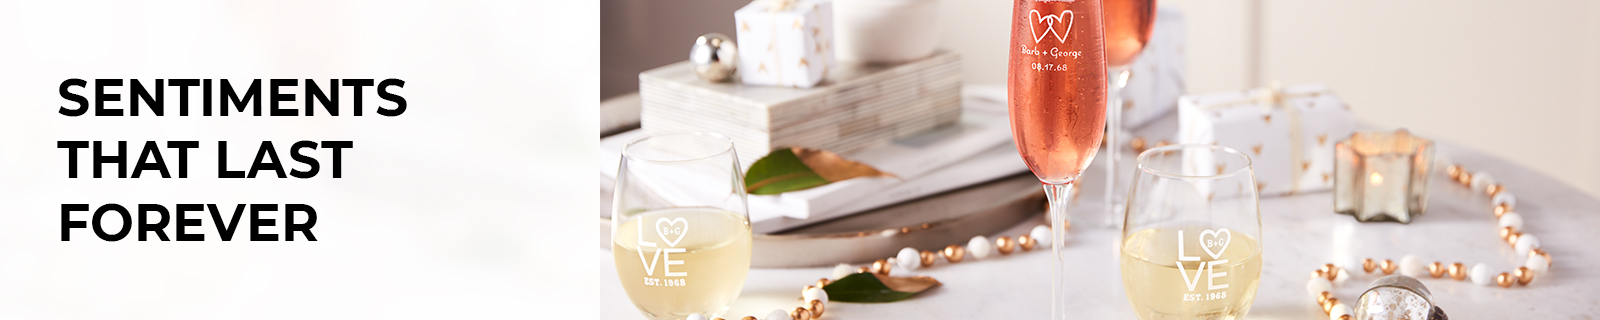 Personalized Glass Gifts & Glassware